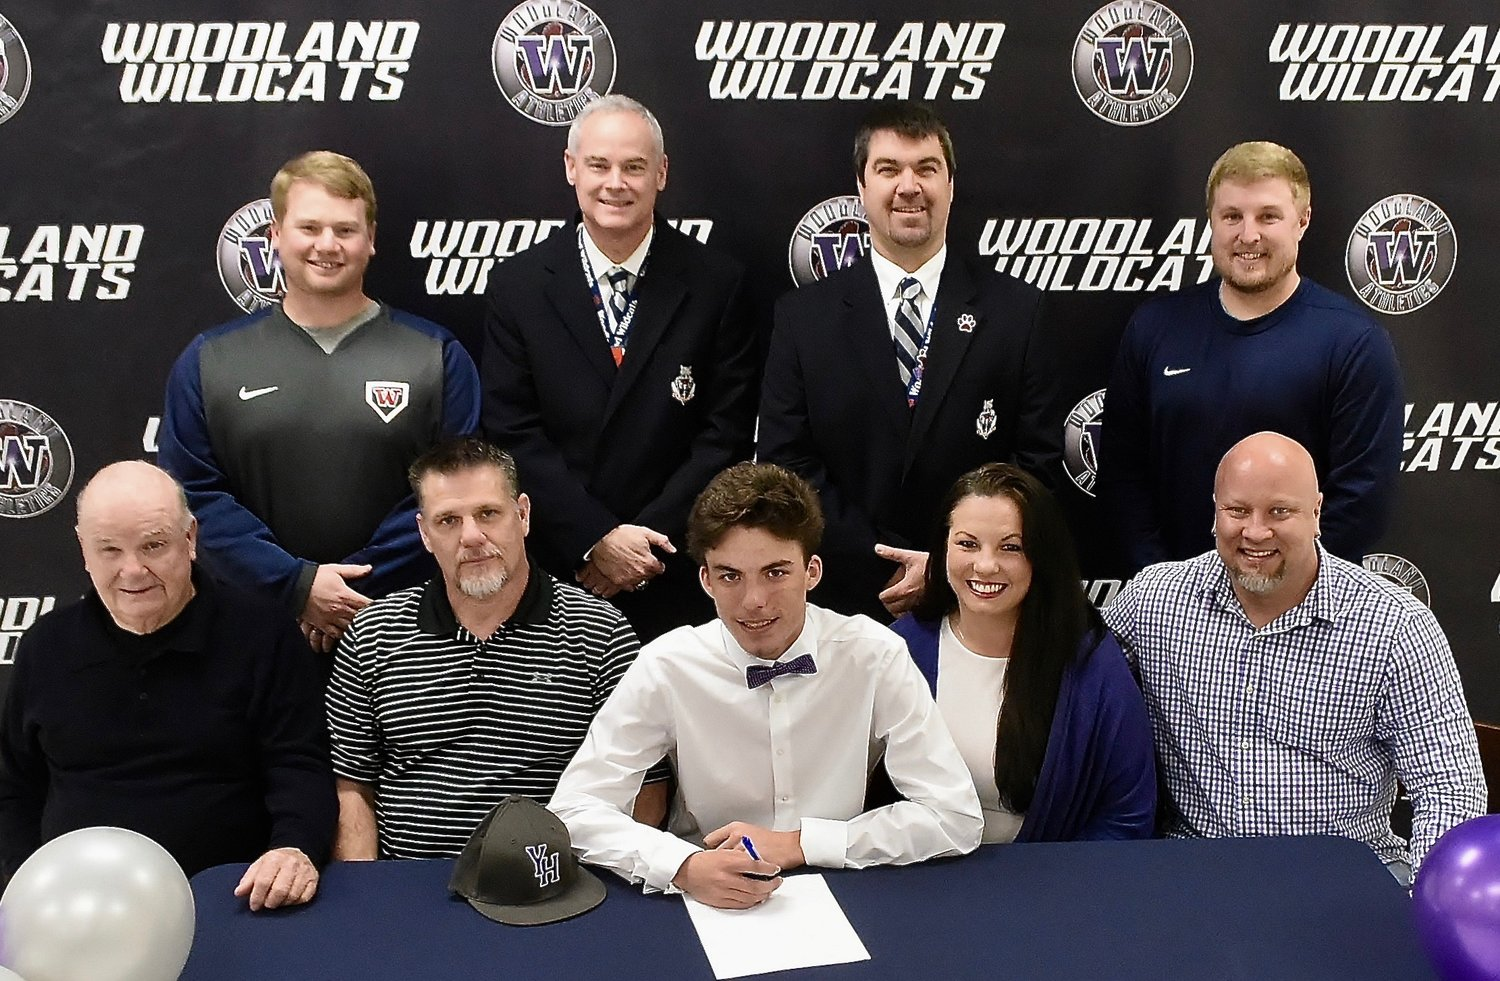 Woodland High senior Bailey Ward signed recently to play baseball at Young Harris College. On hand for the signing were, from left, front row: Jimmy Ward, grandfather; Shane Ward, father; Rhonda Webb, mother; Steve Webb, stepfather; back row, Matt Montgomery, WHS interim head coach; Wes Dickey, WHS principal; John Howard, WHS athletic director; and Colby Coursey, former WHS head coach.